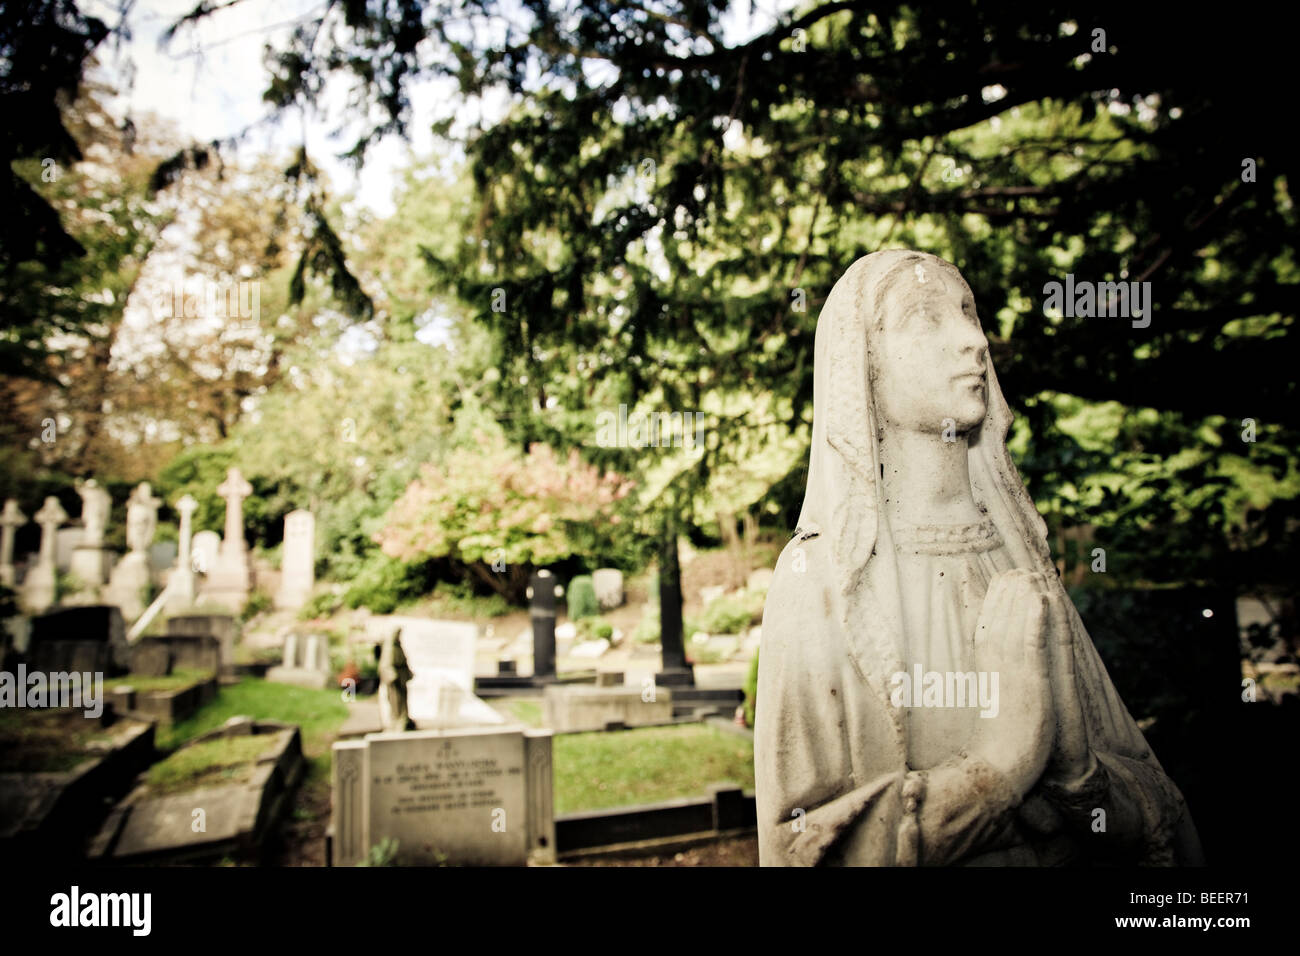 A praying female figure with a shawl made of stone stands over a grave amongst trees in Highgate Cemetery London - Stock Image